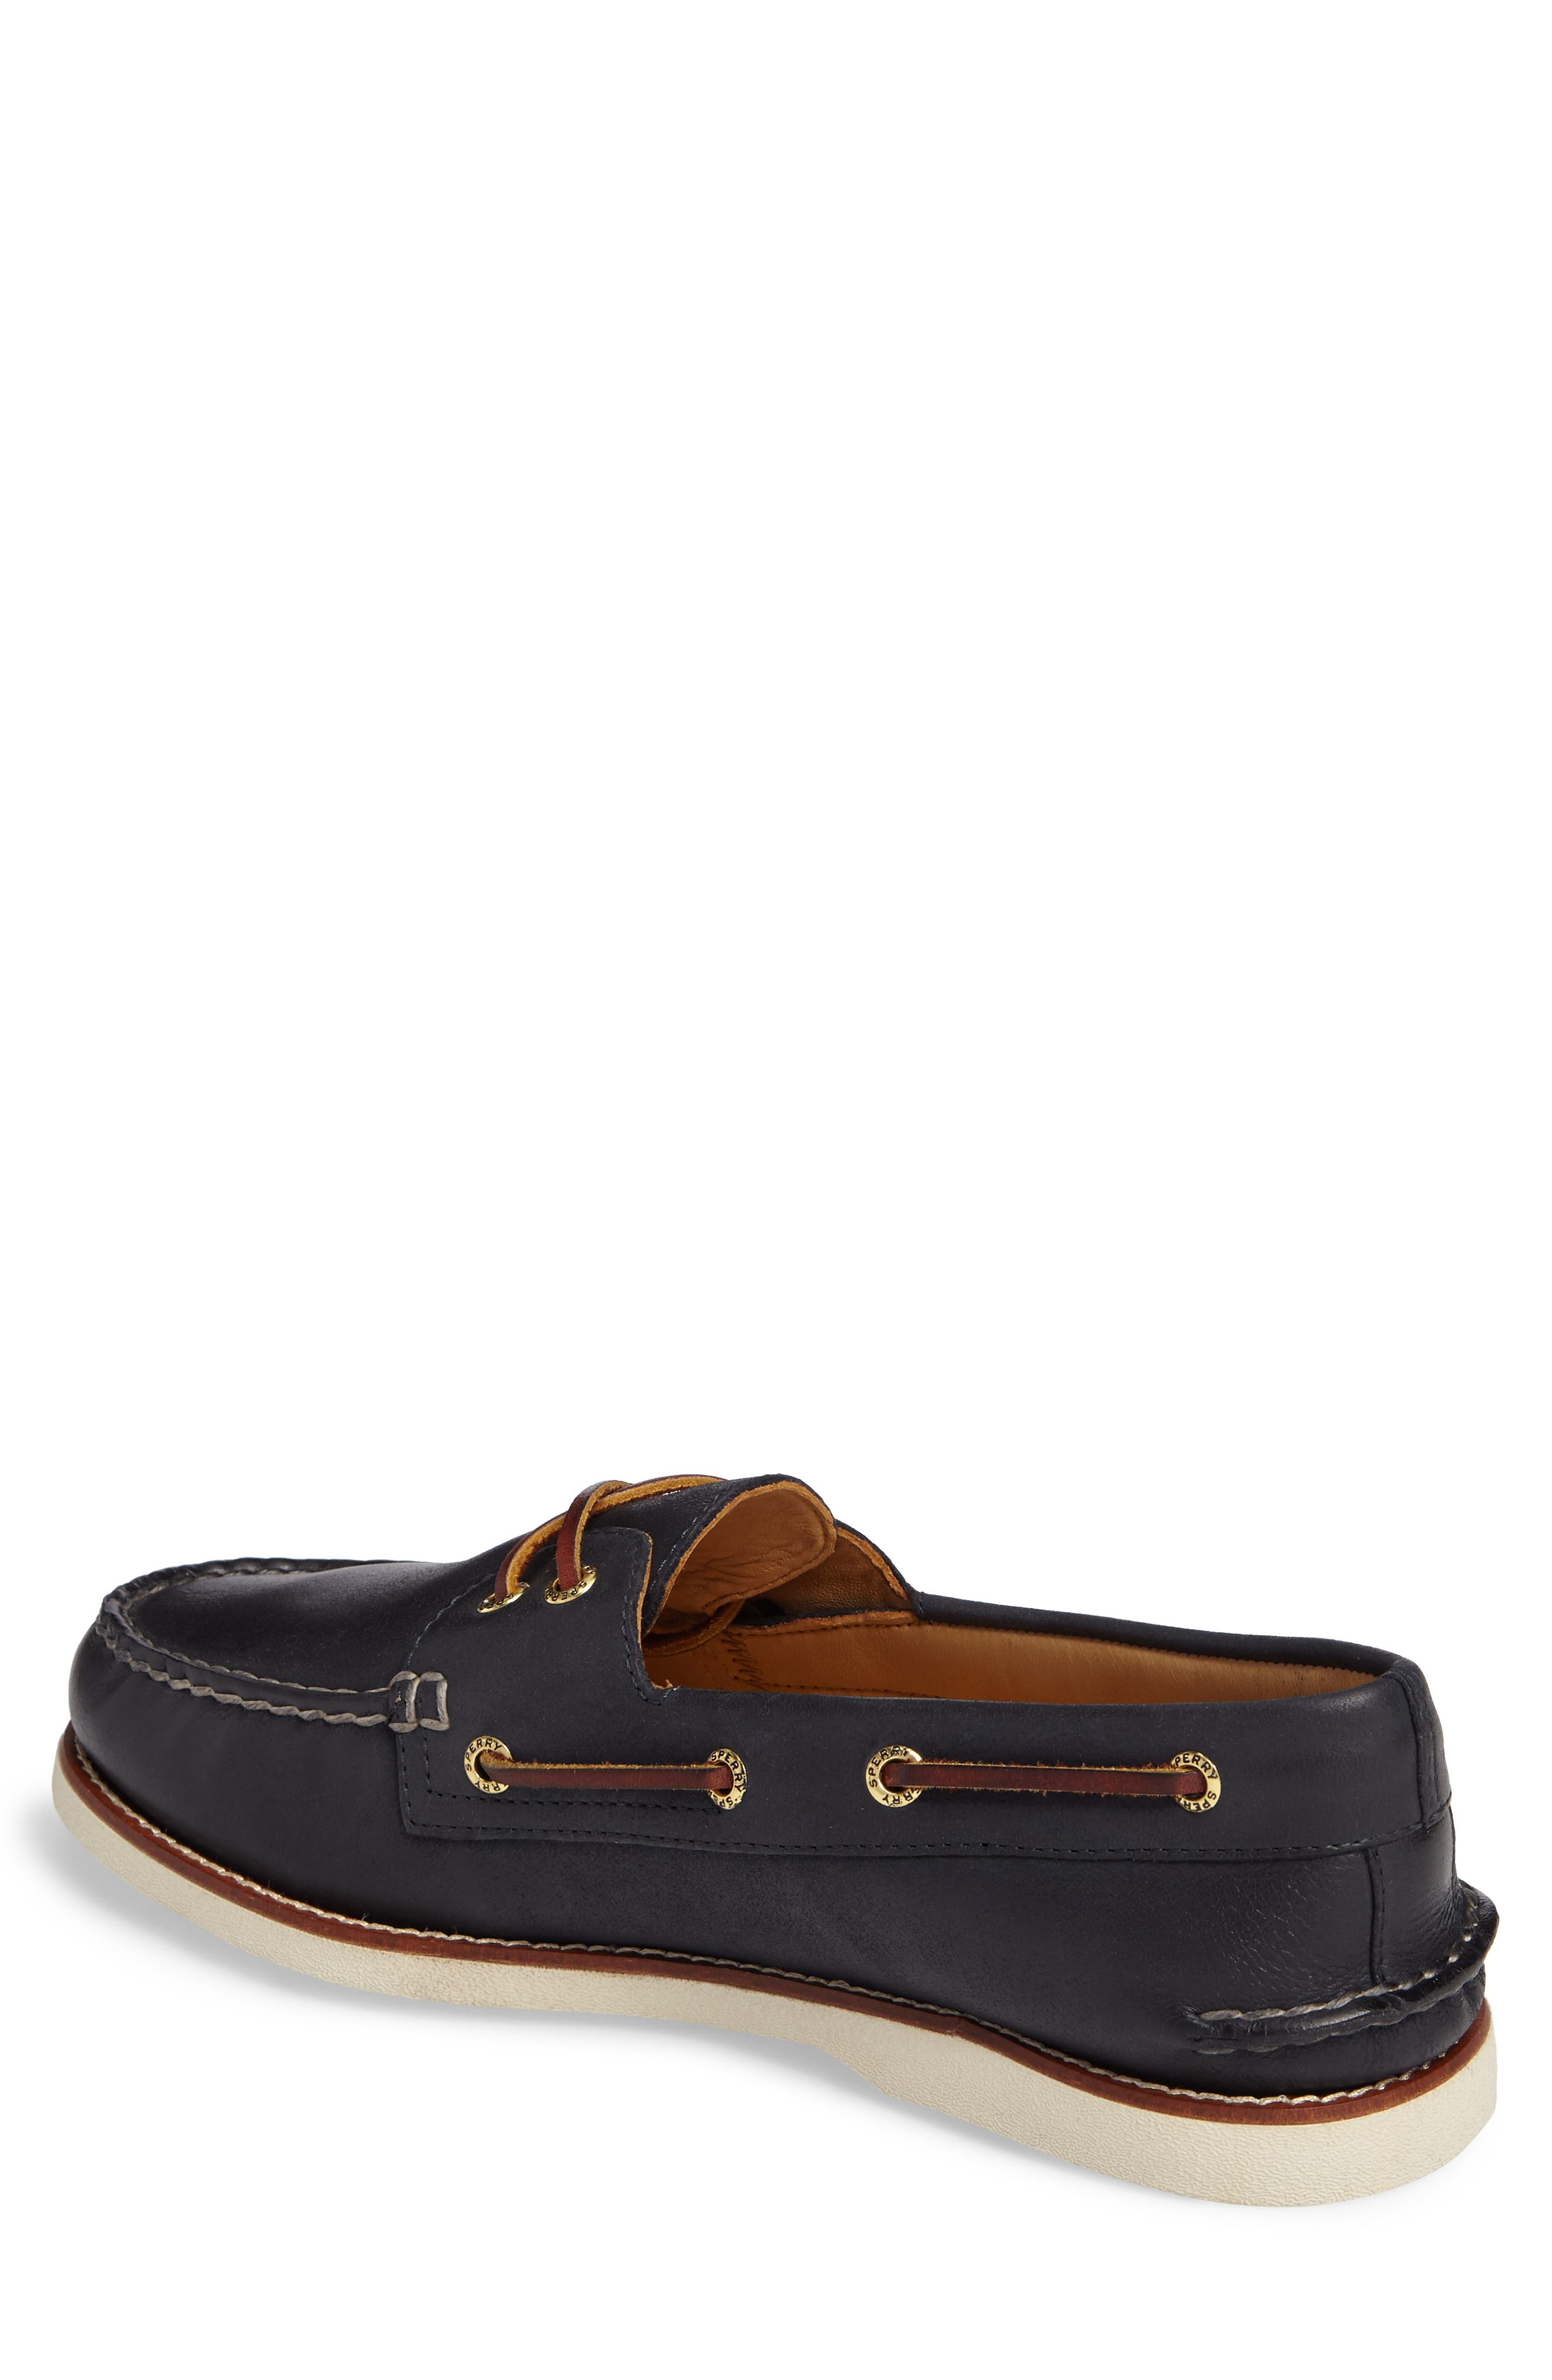 'Gold Cup - Authentic Original' Boat Shoe,                             Alternate thumbnail 2, color,                             NAVY LEATHER